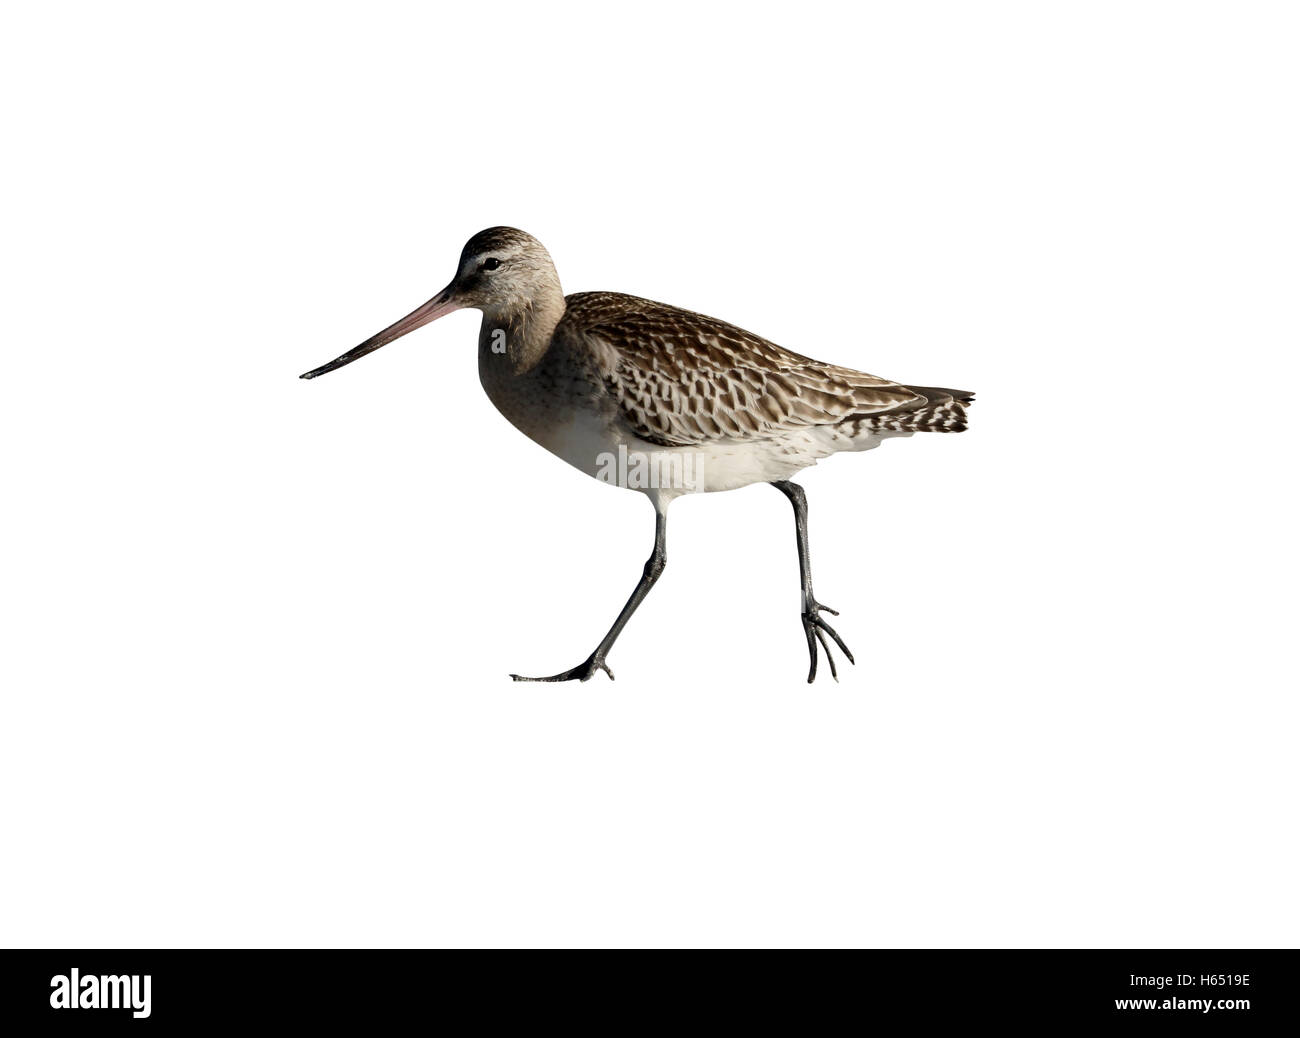 Black-tailed godwit, Limosa limosa, Single bird on beach,  South Uist, Hebrides, September 2015 - Stock Image